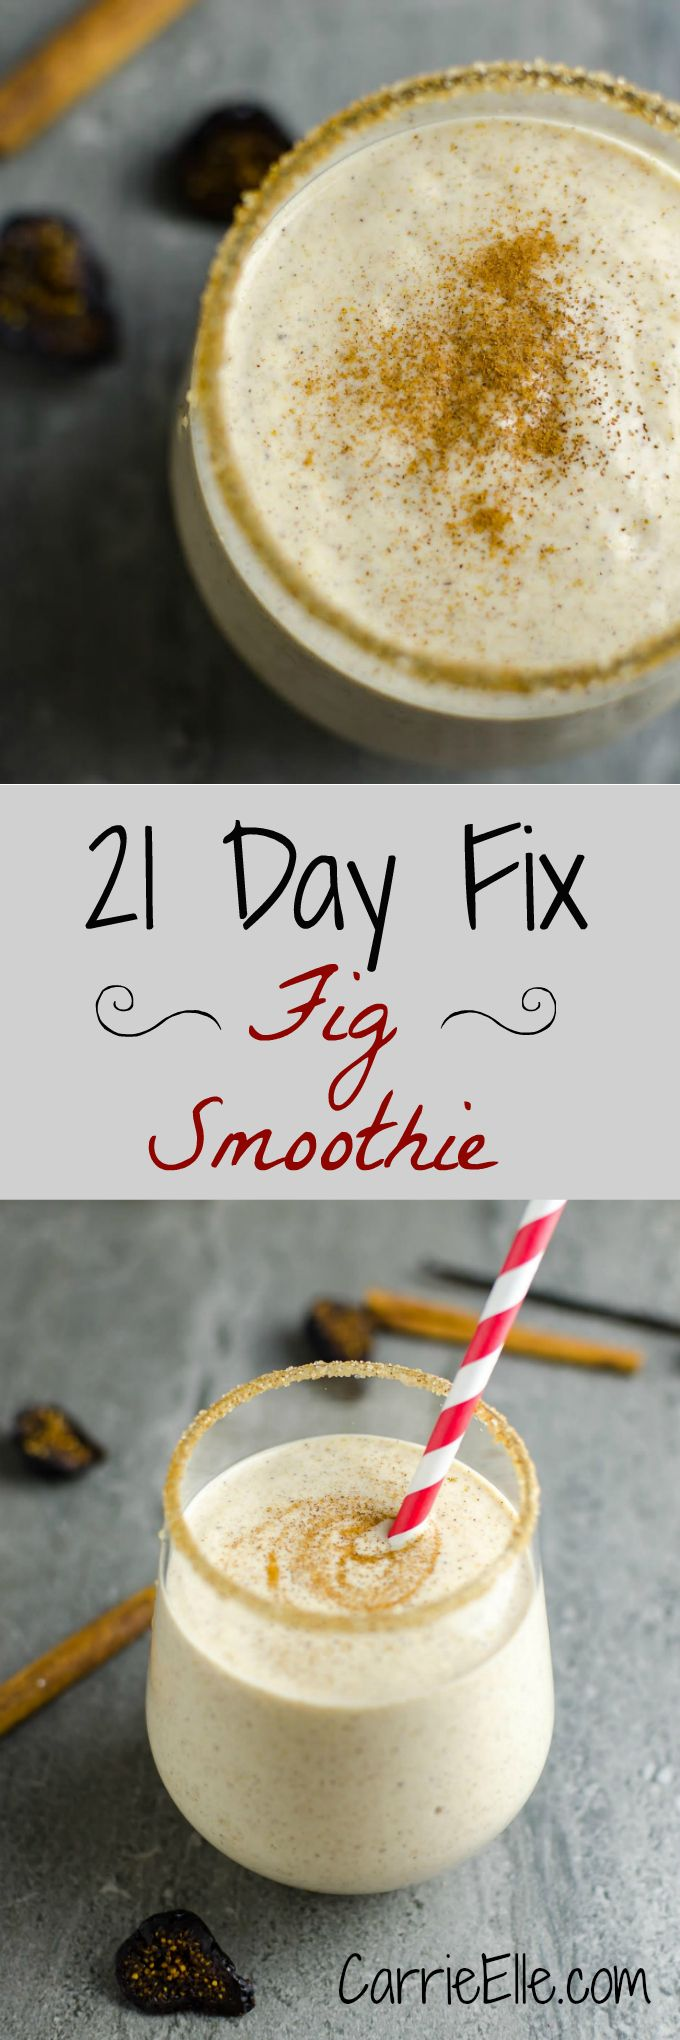 21 Day Fix Fig Smoothie